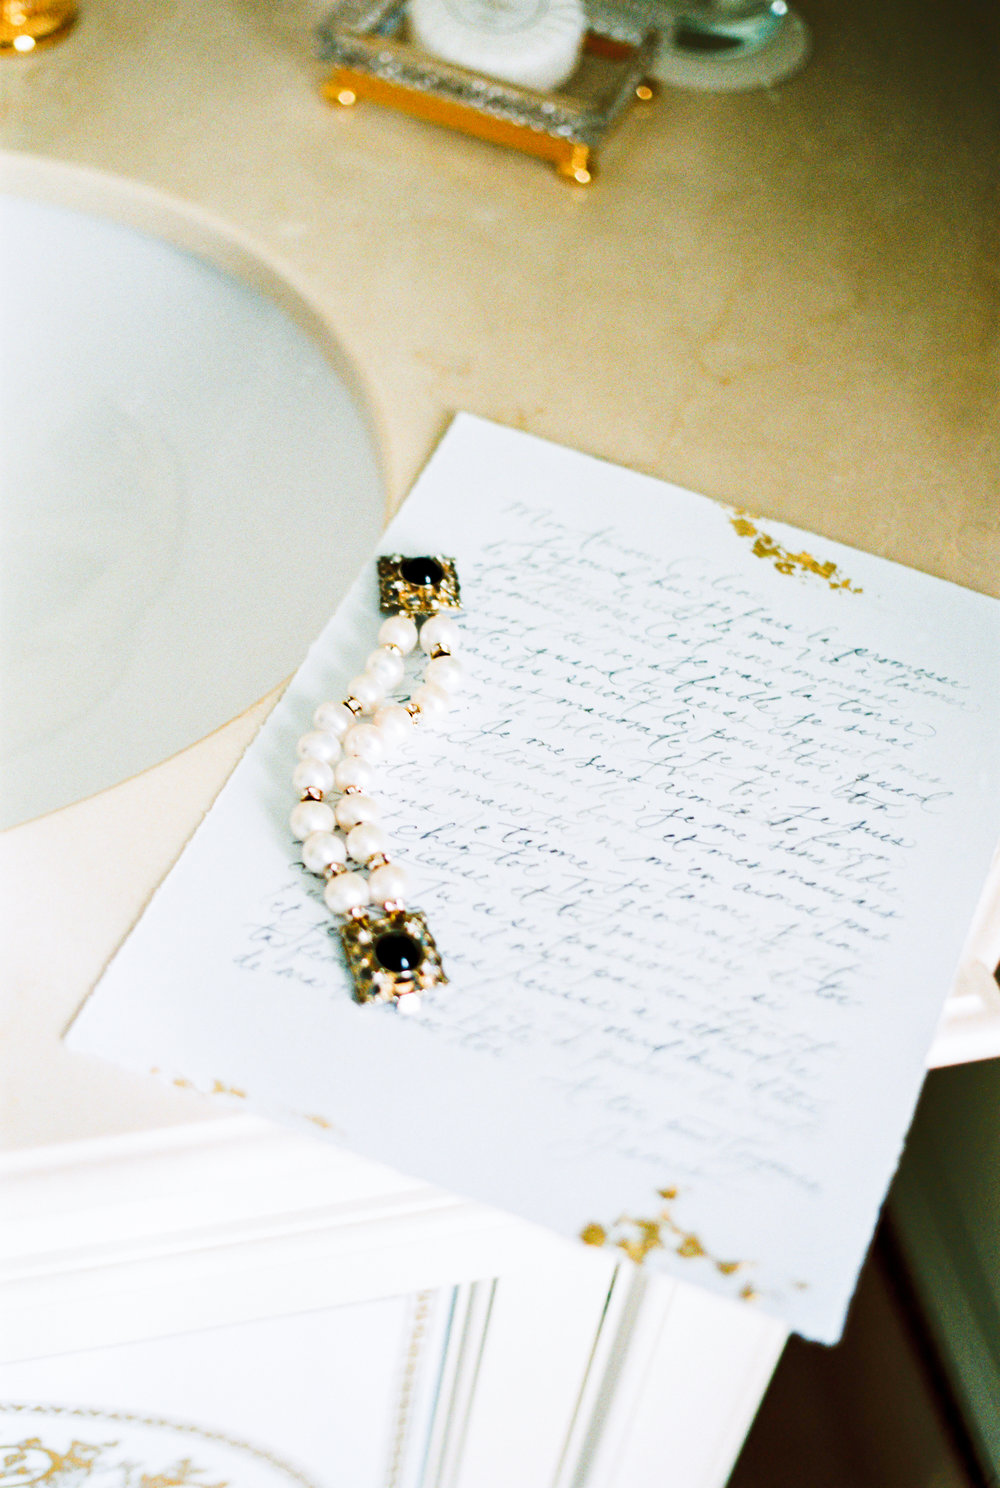 Bracelet by Bekah Anne - Jacqueline Anne Photography - Halifax, Nova Scotia Wedding Photographer